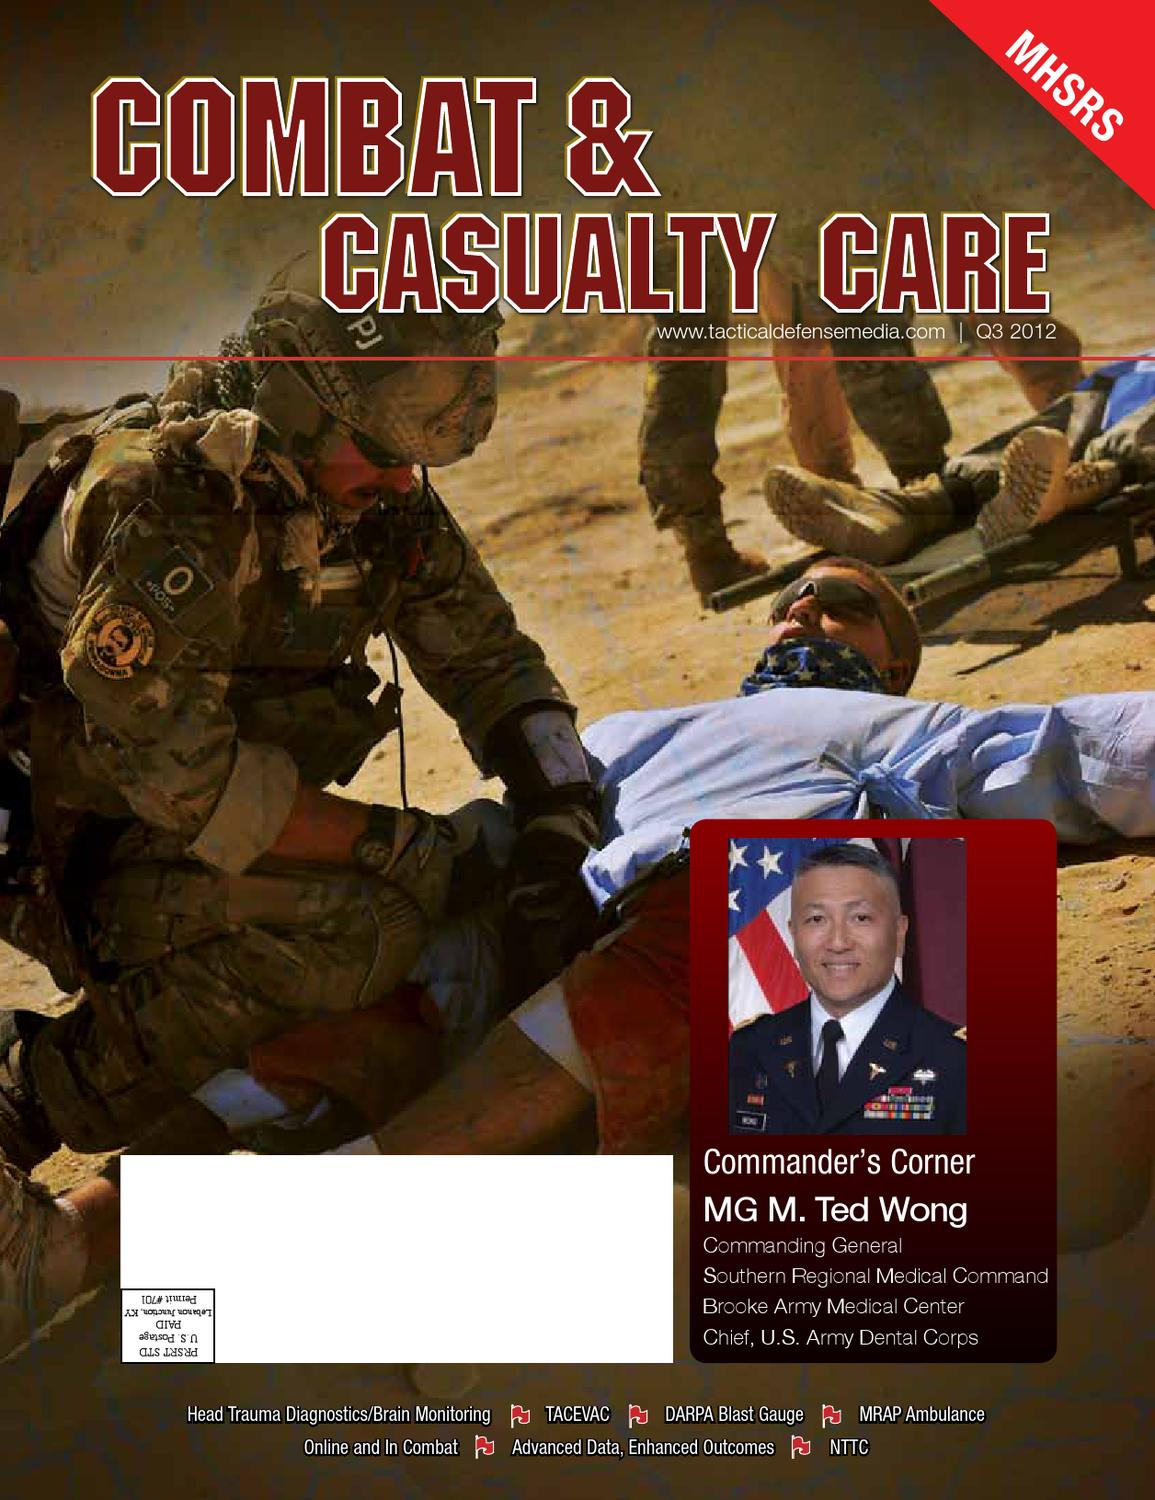 Combat & Casualty Care, Q3 2012 by Tactical Defense Media